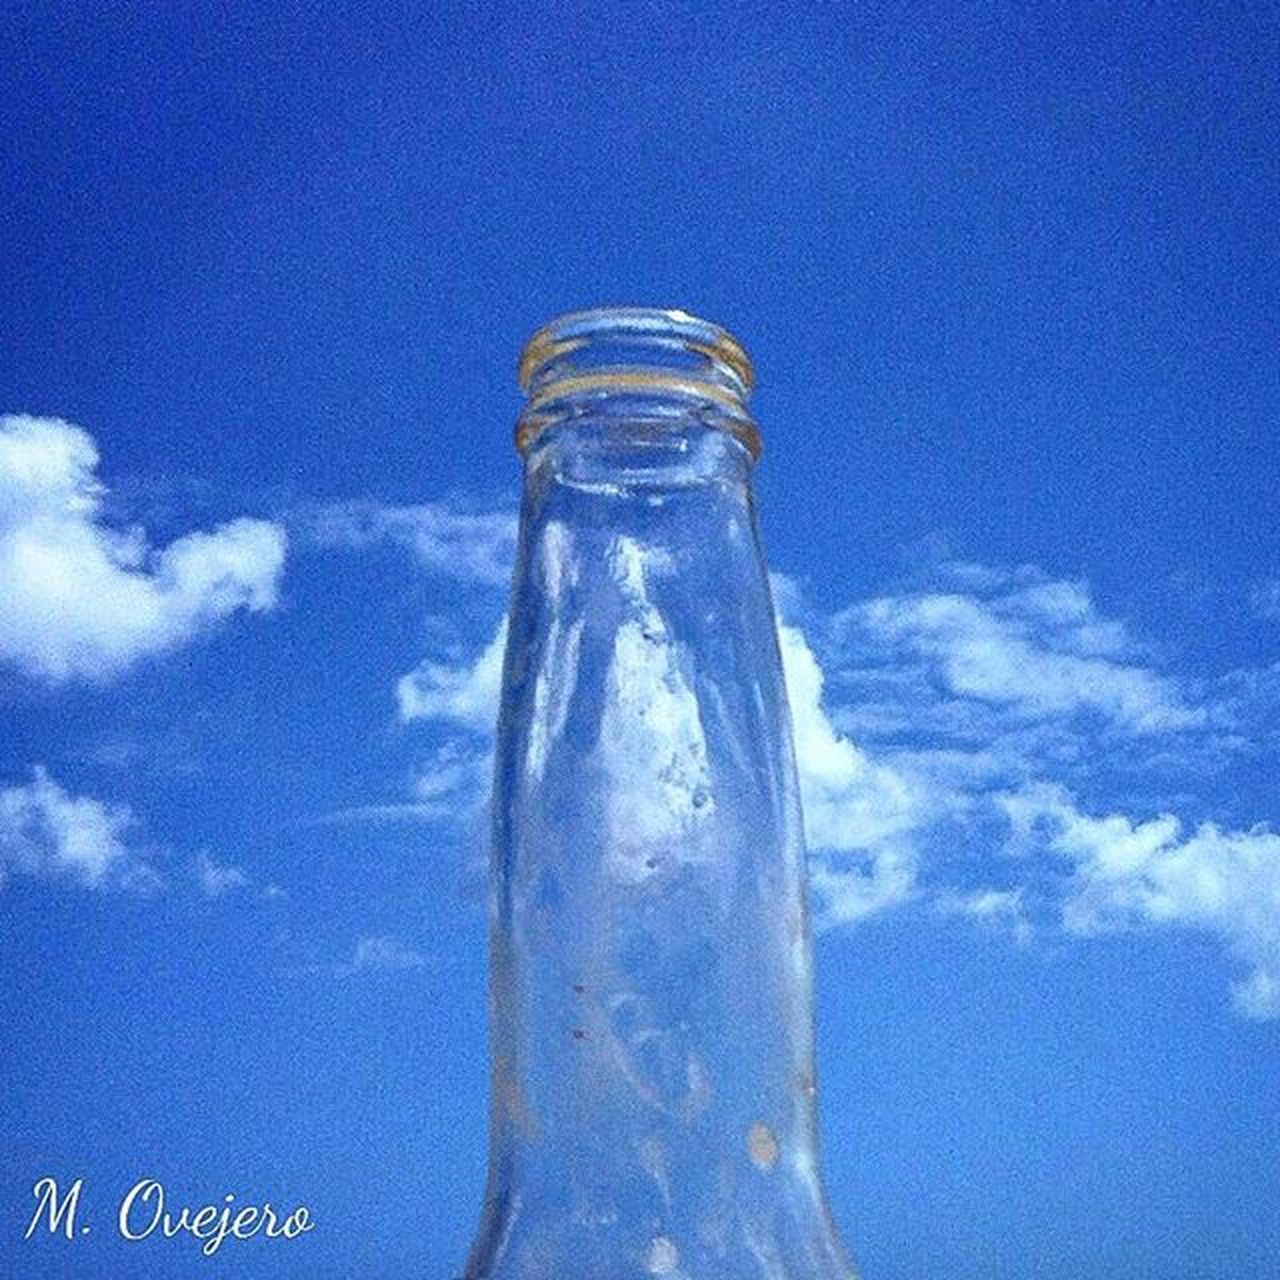 DirtyMind Bottlebeer Bottles Bottle Bluesky Blue Sky Clouds Cloud Creative Creativepictures Colorfull Whatareyouthinking Beer Coronita Beerlovers Transparents Long Beermoments